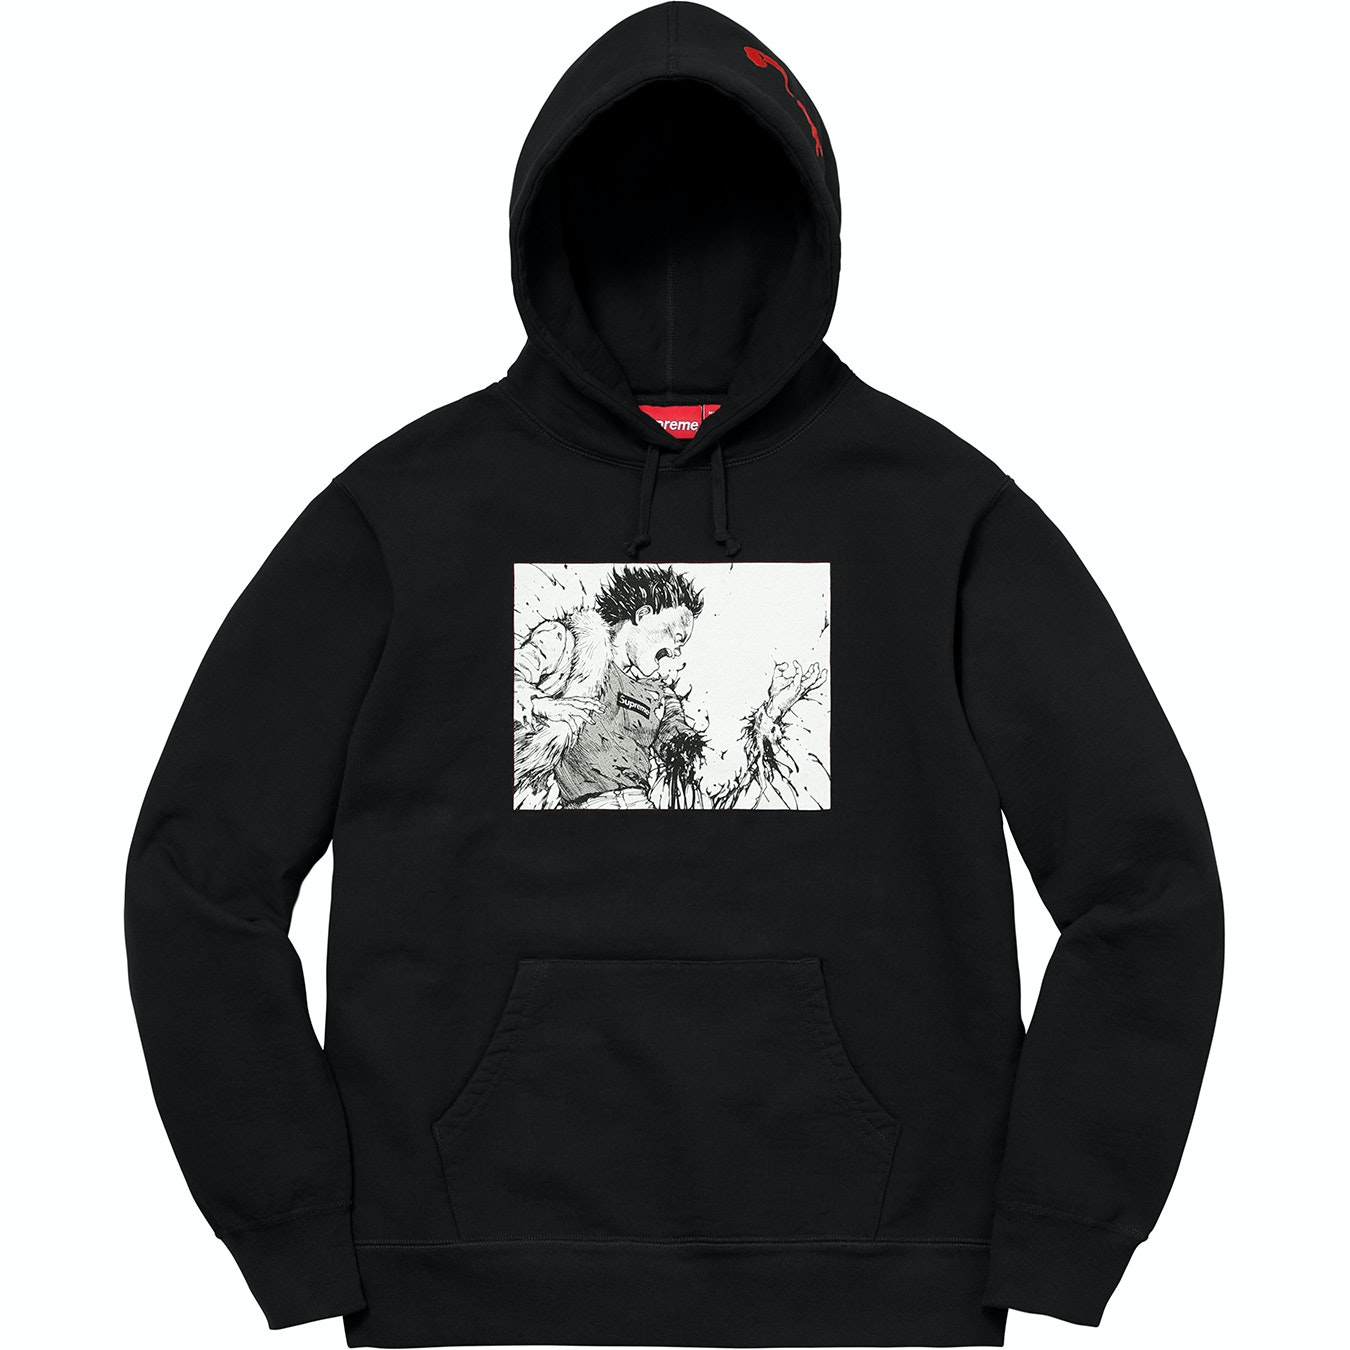 how to buy supreme online